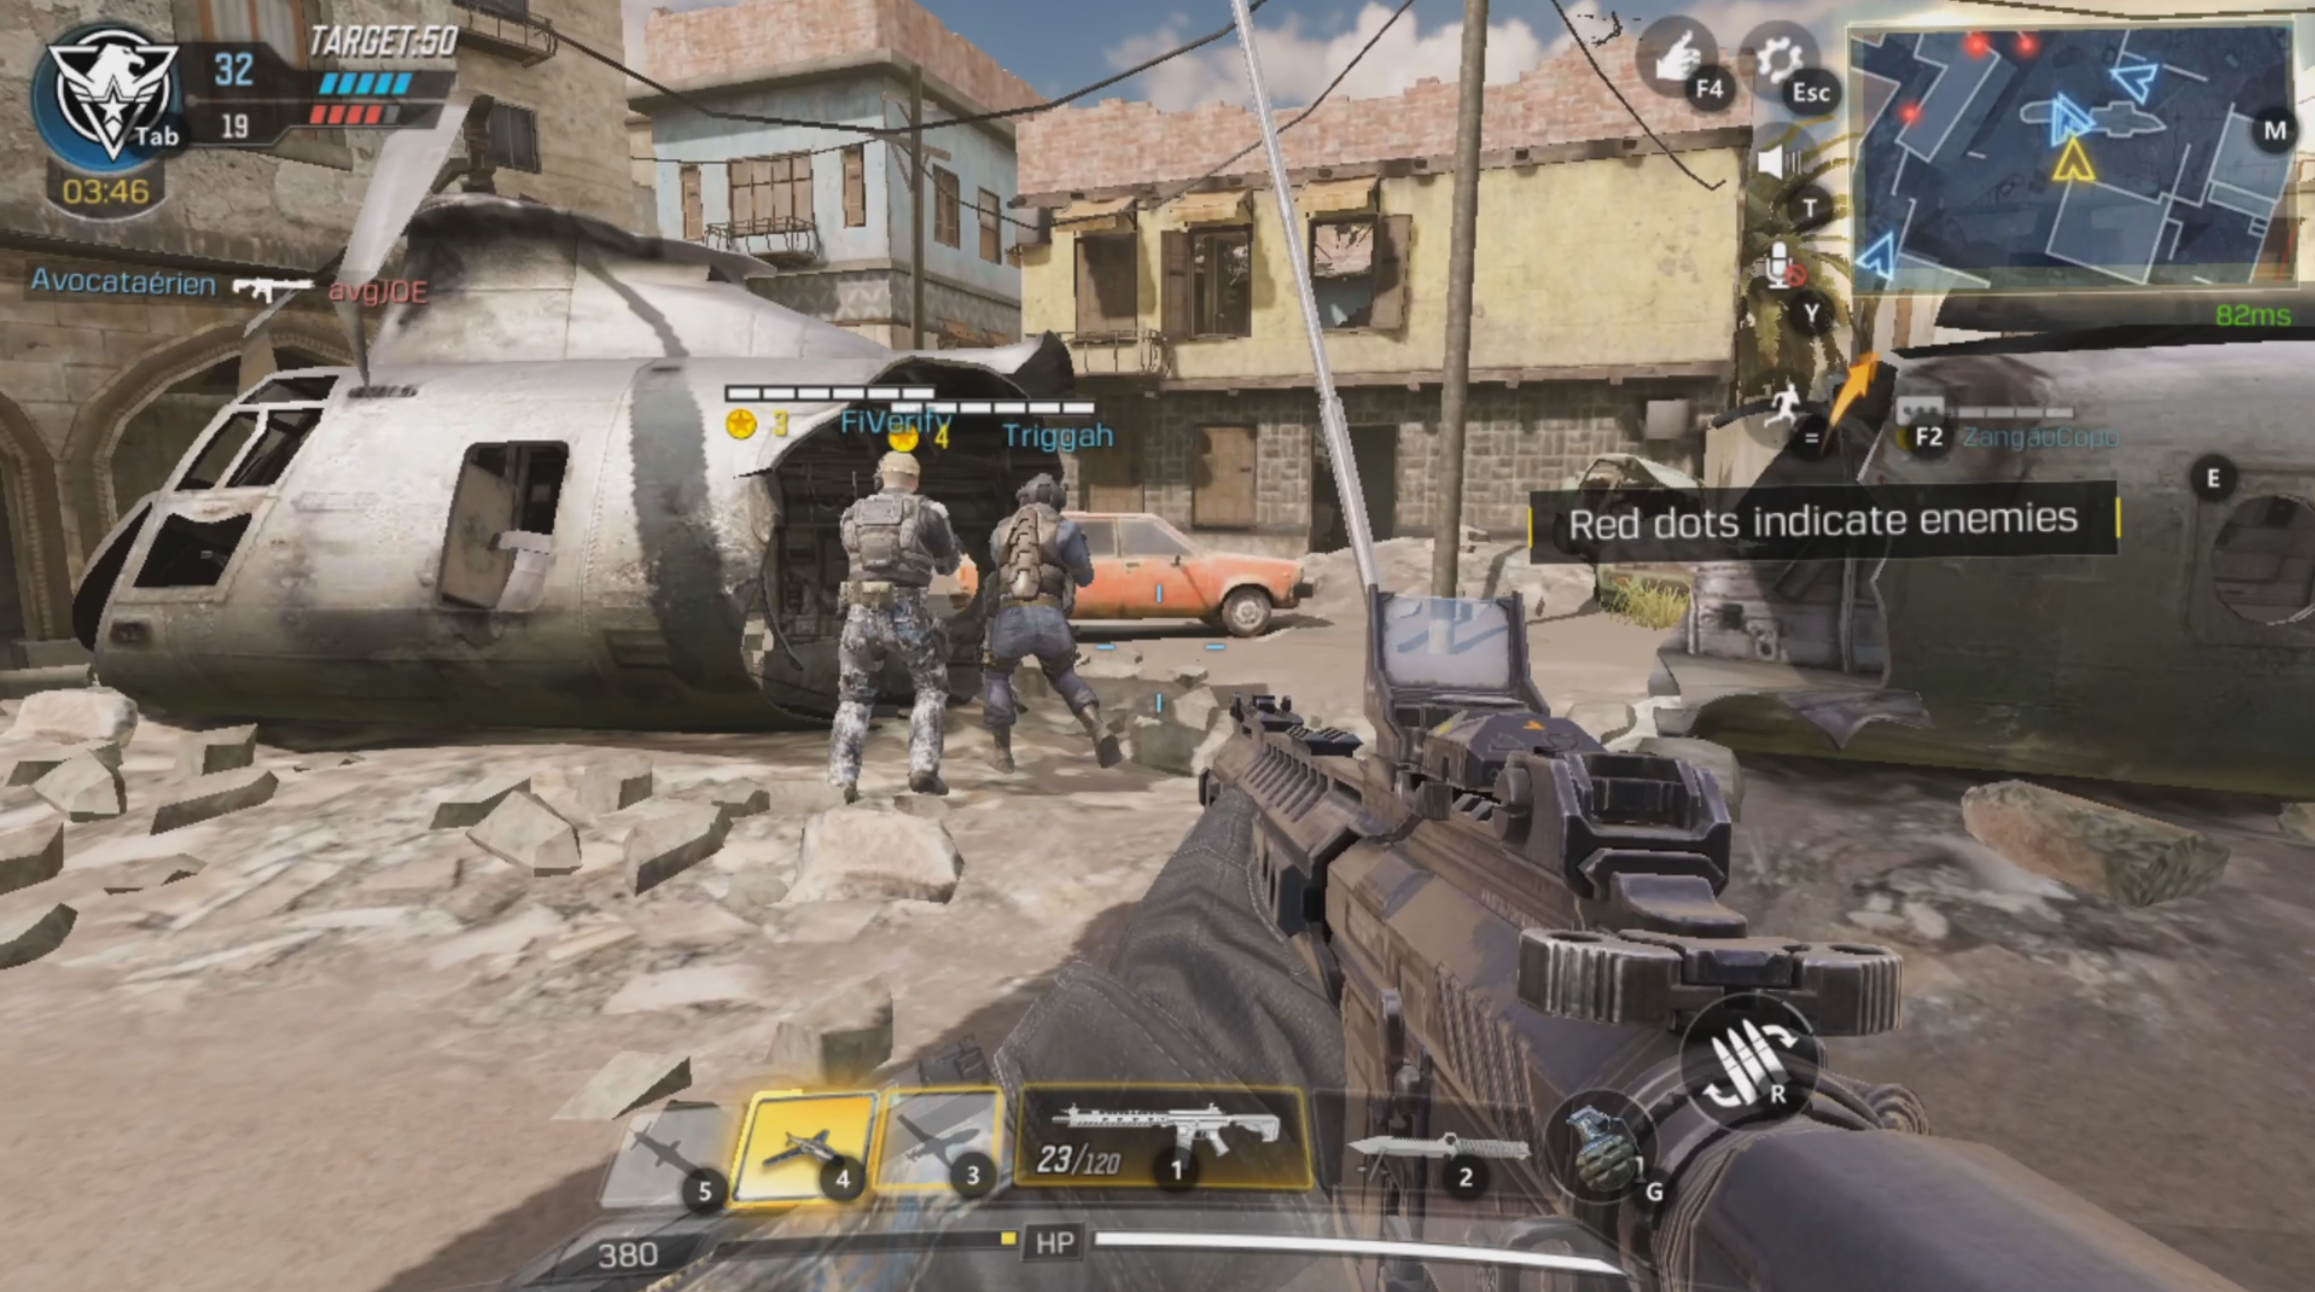 How to download Call of Duty Mobile on Windows 10 PC